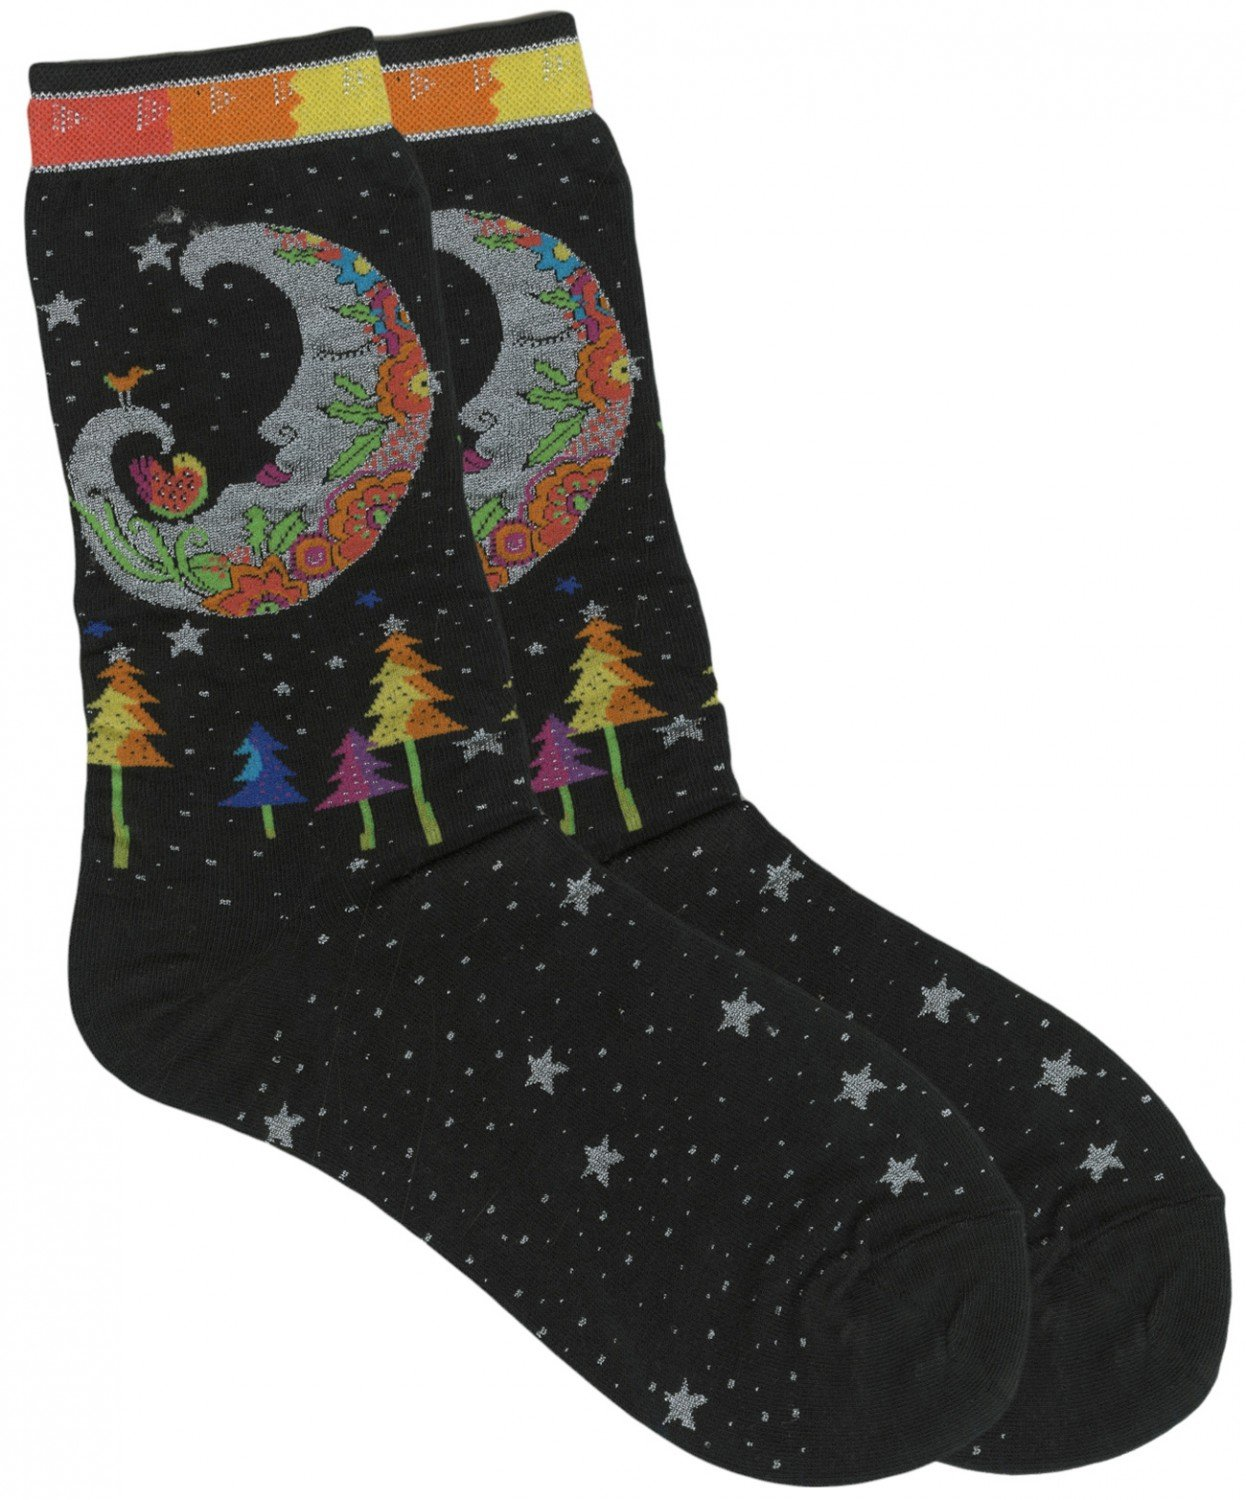 Laurel Burch Mystic Moon socks